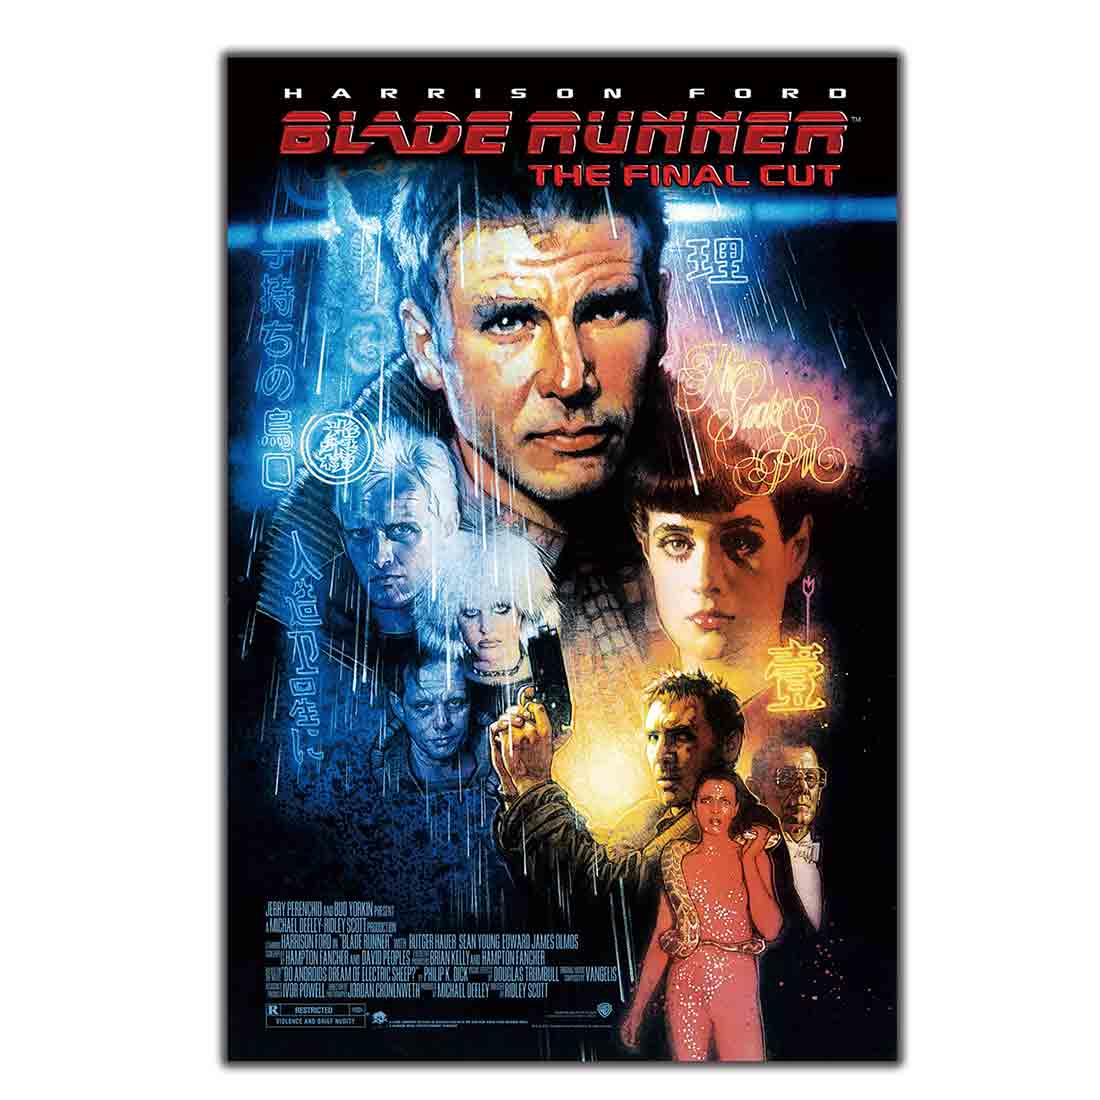 BLADE RUNNER MOVIE harrison FORD sean YOUNG SCI-FI film noir hot Art Poster Print Wall decor8x12 12x18 24x36 decor canvas image